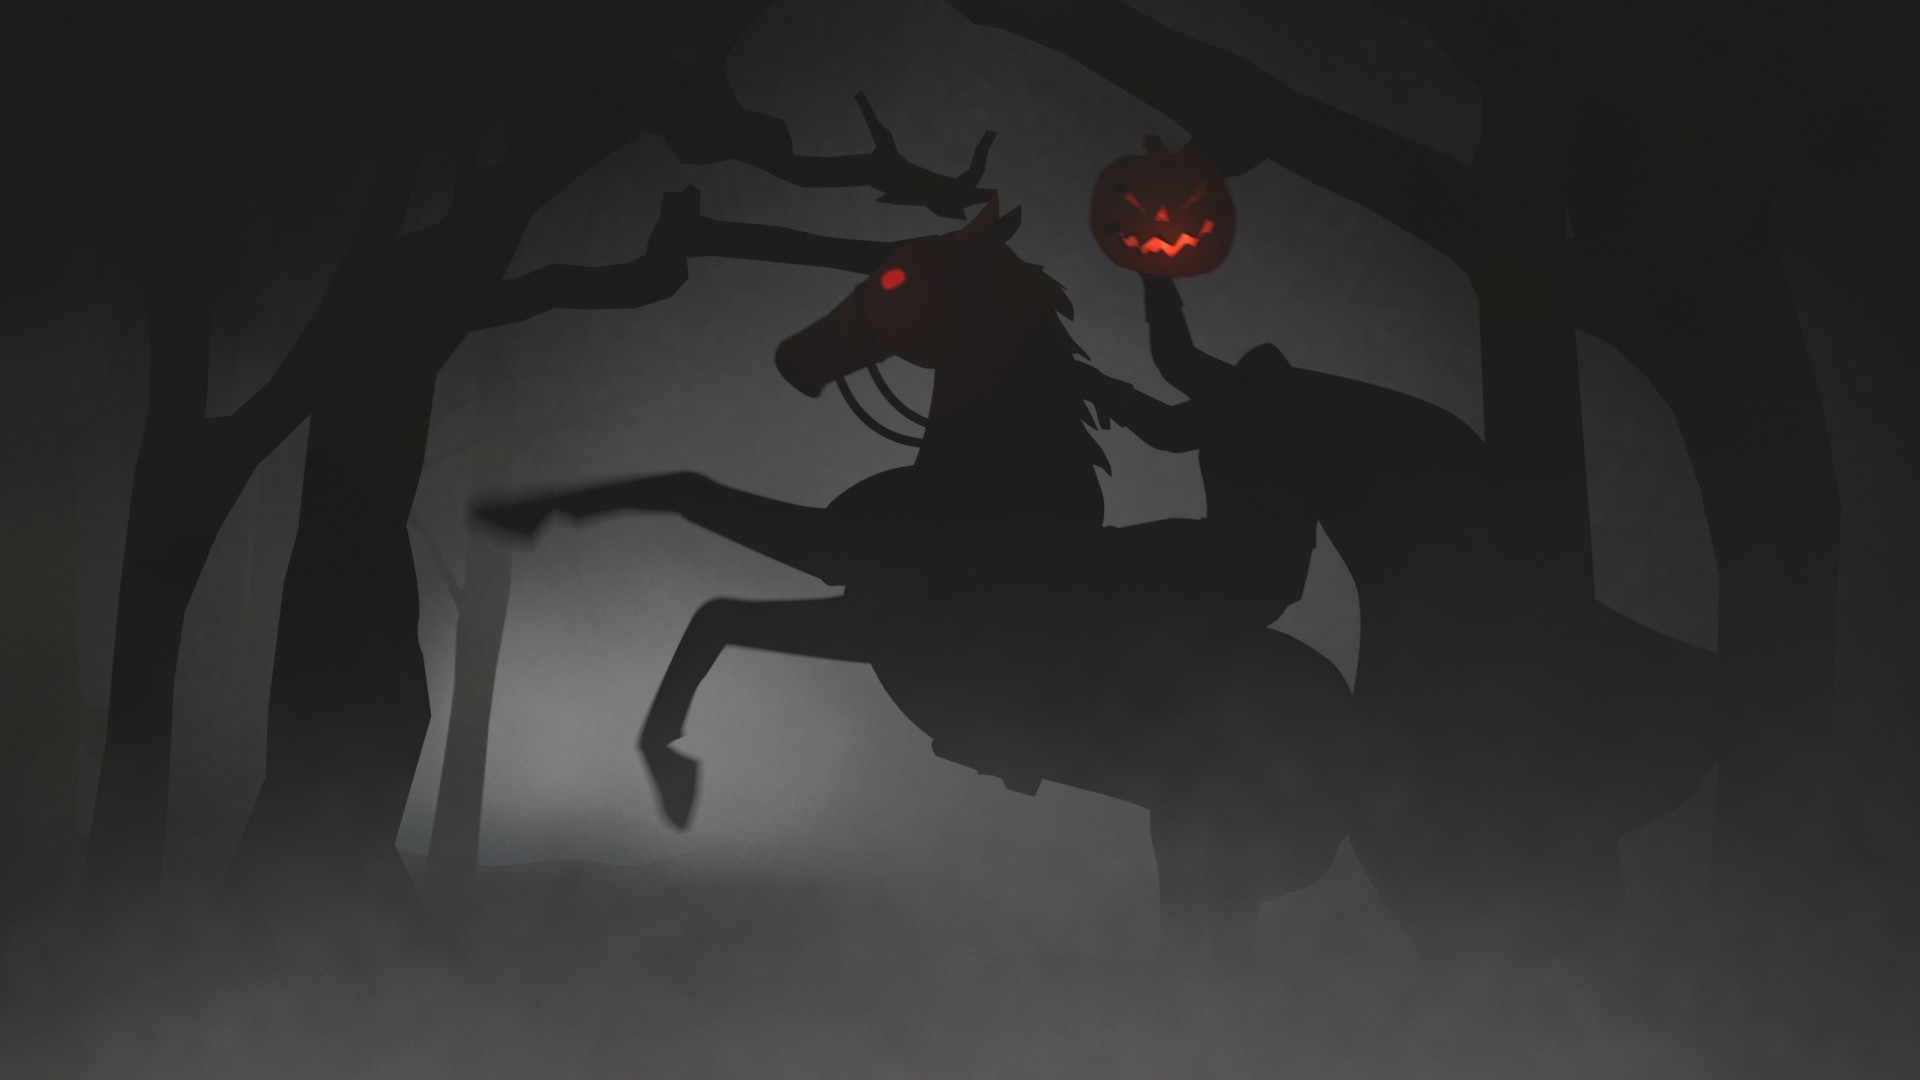 1920x1080 Cracking the Code takes on the Legend of Sleepy Hollow